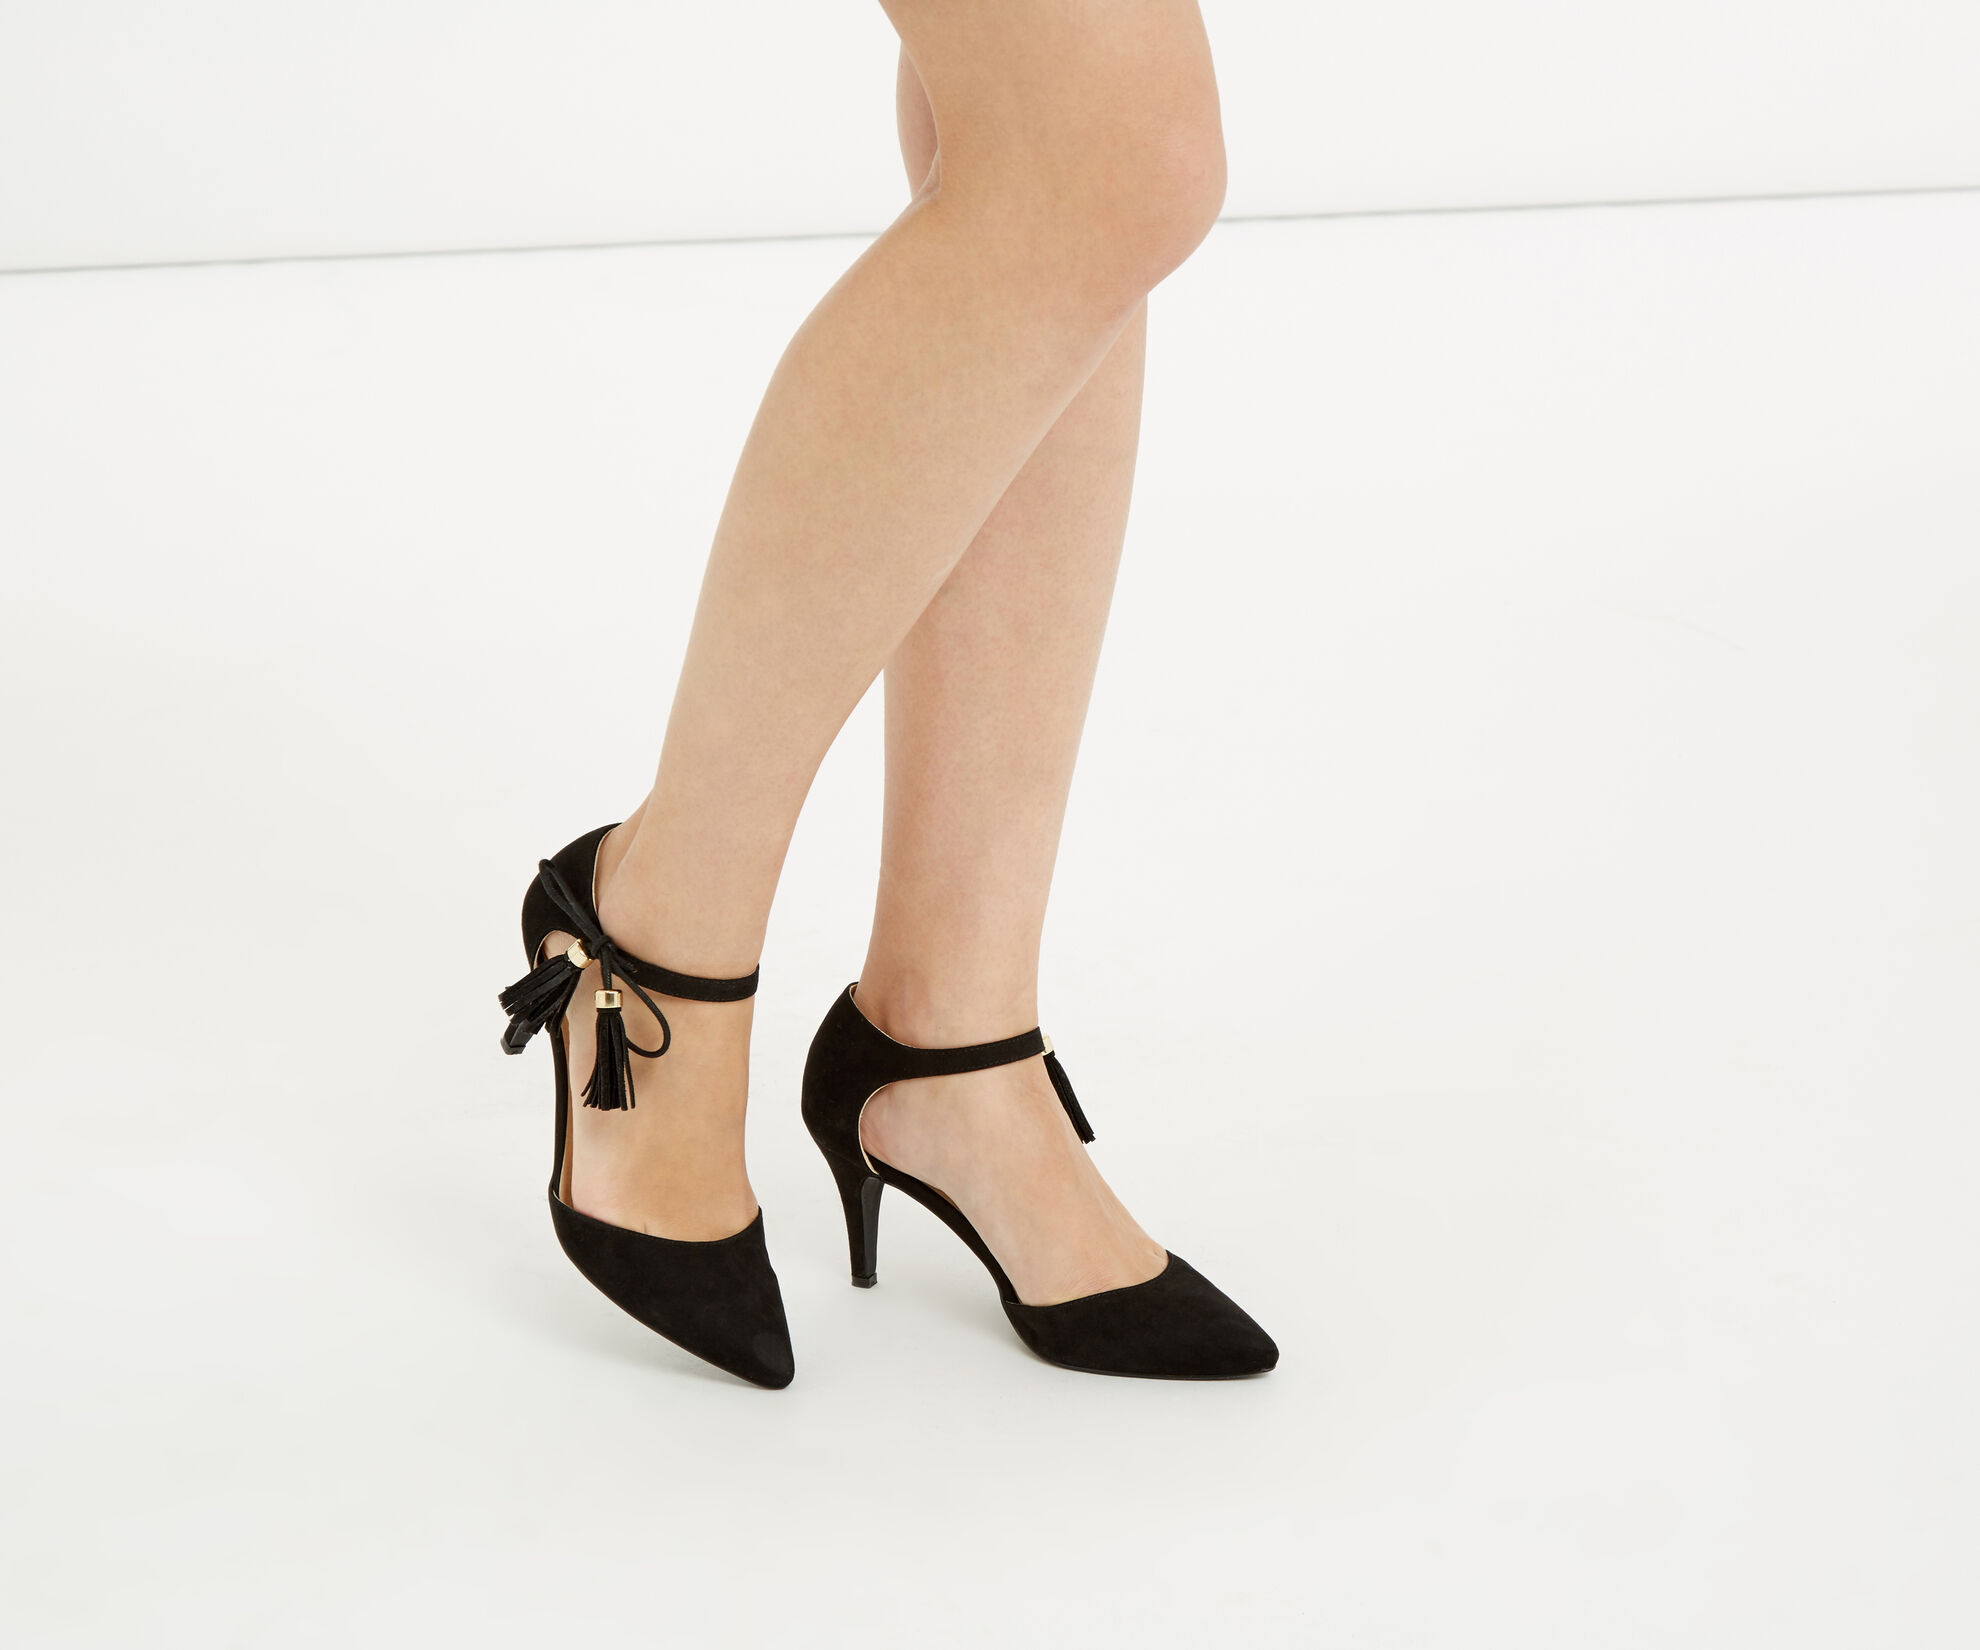 Oasis, Tilly Tassel Heel Black 1